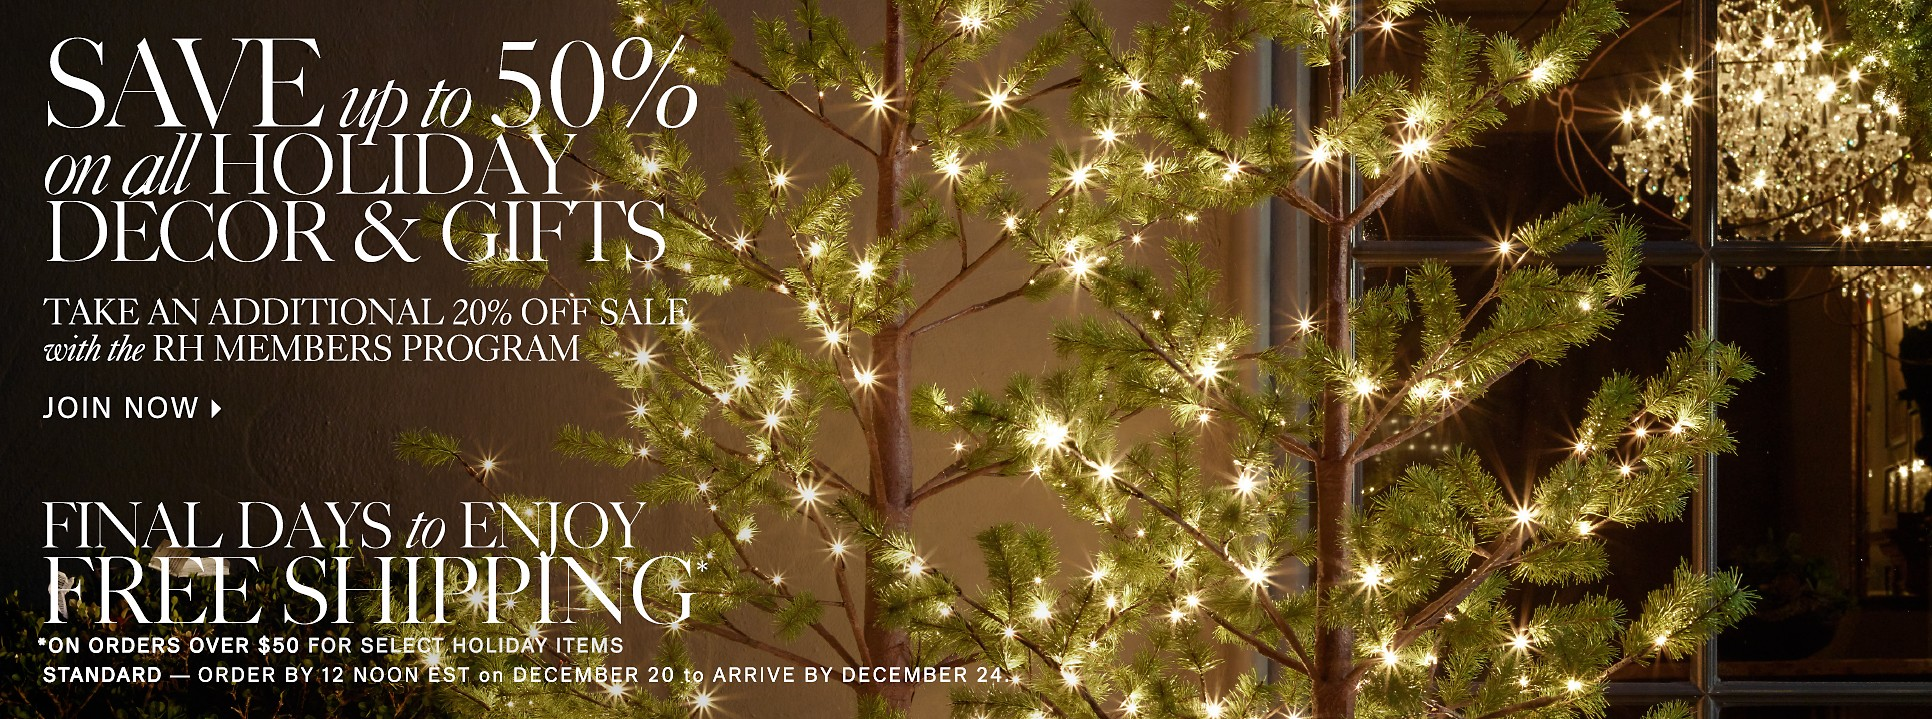 Save on Holiday Gifts and Decor